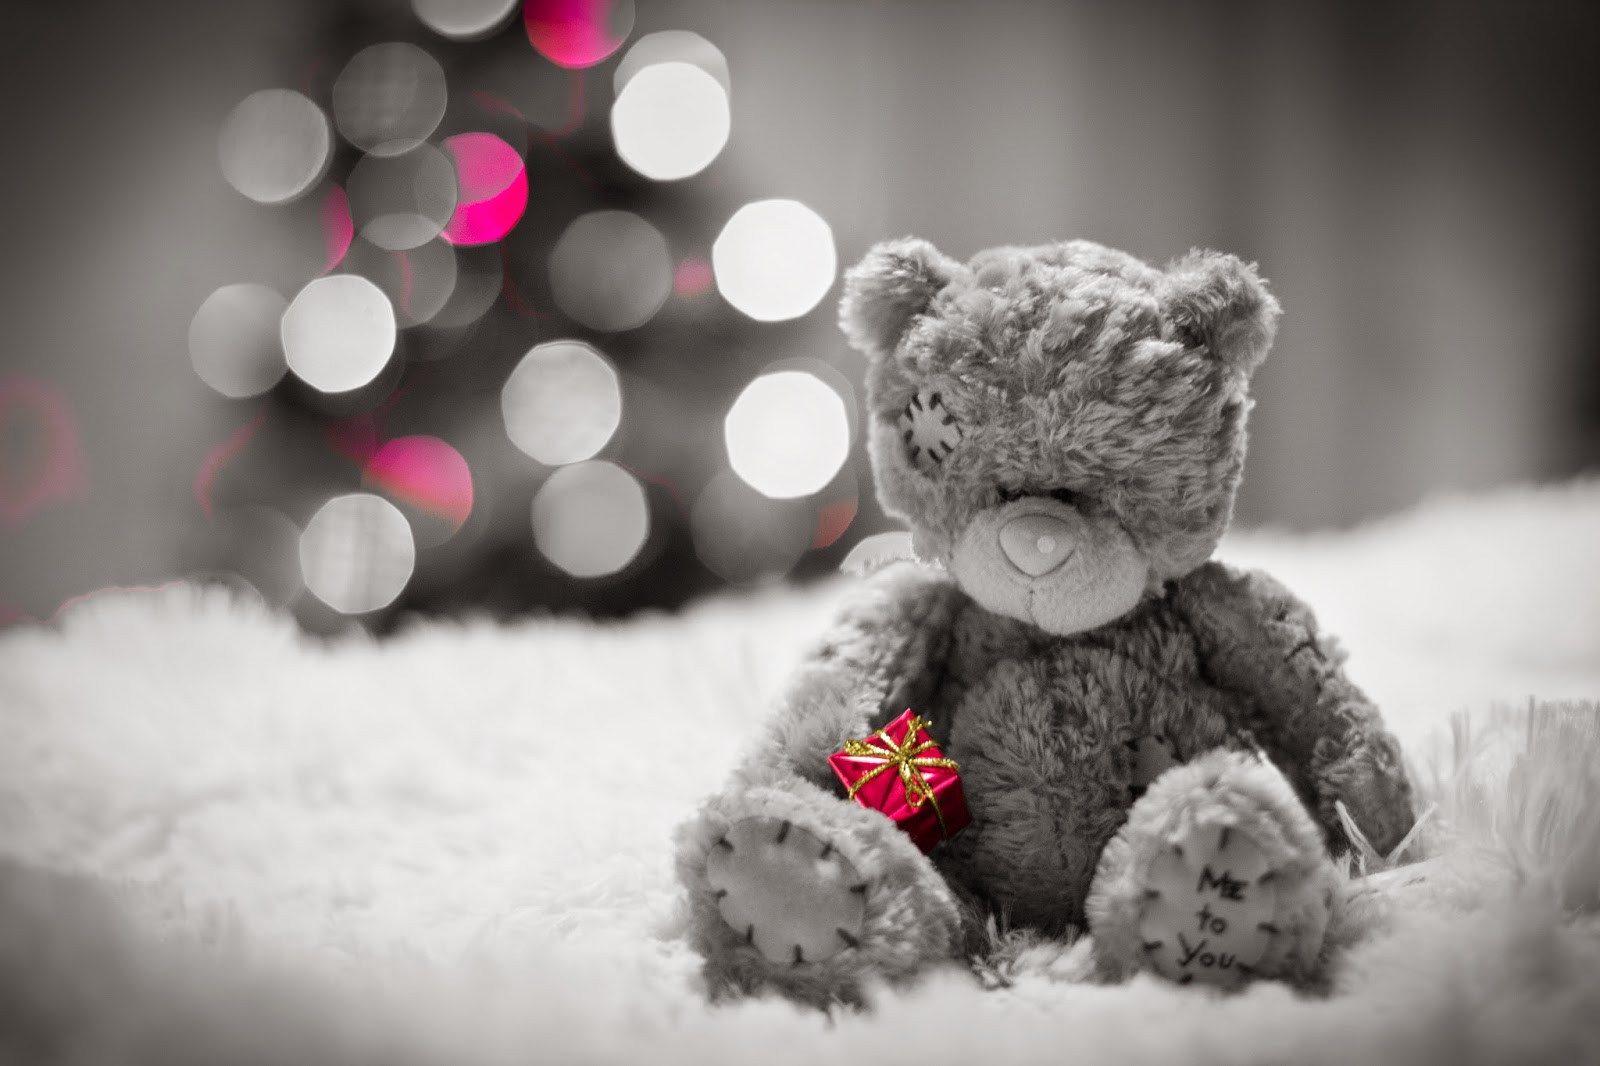 pictures of sad teddy bear lost & lonely feeling after love break up